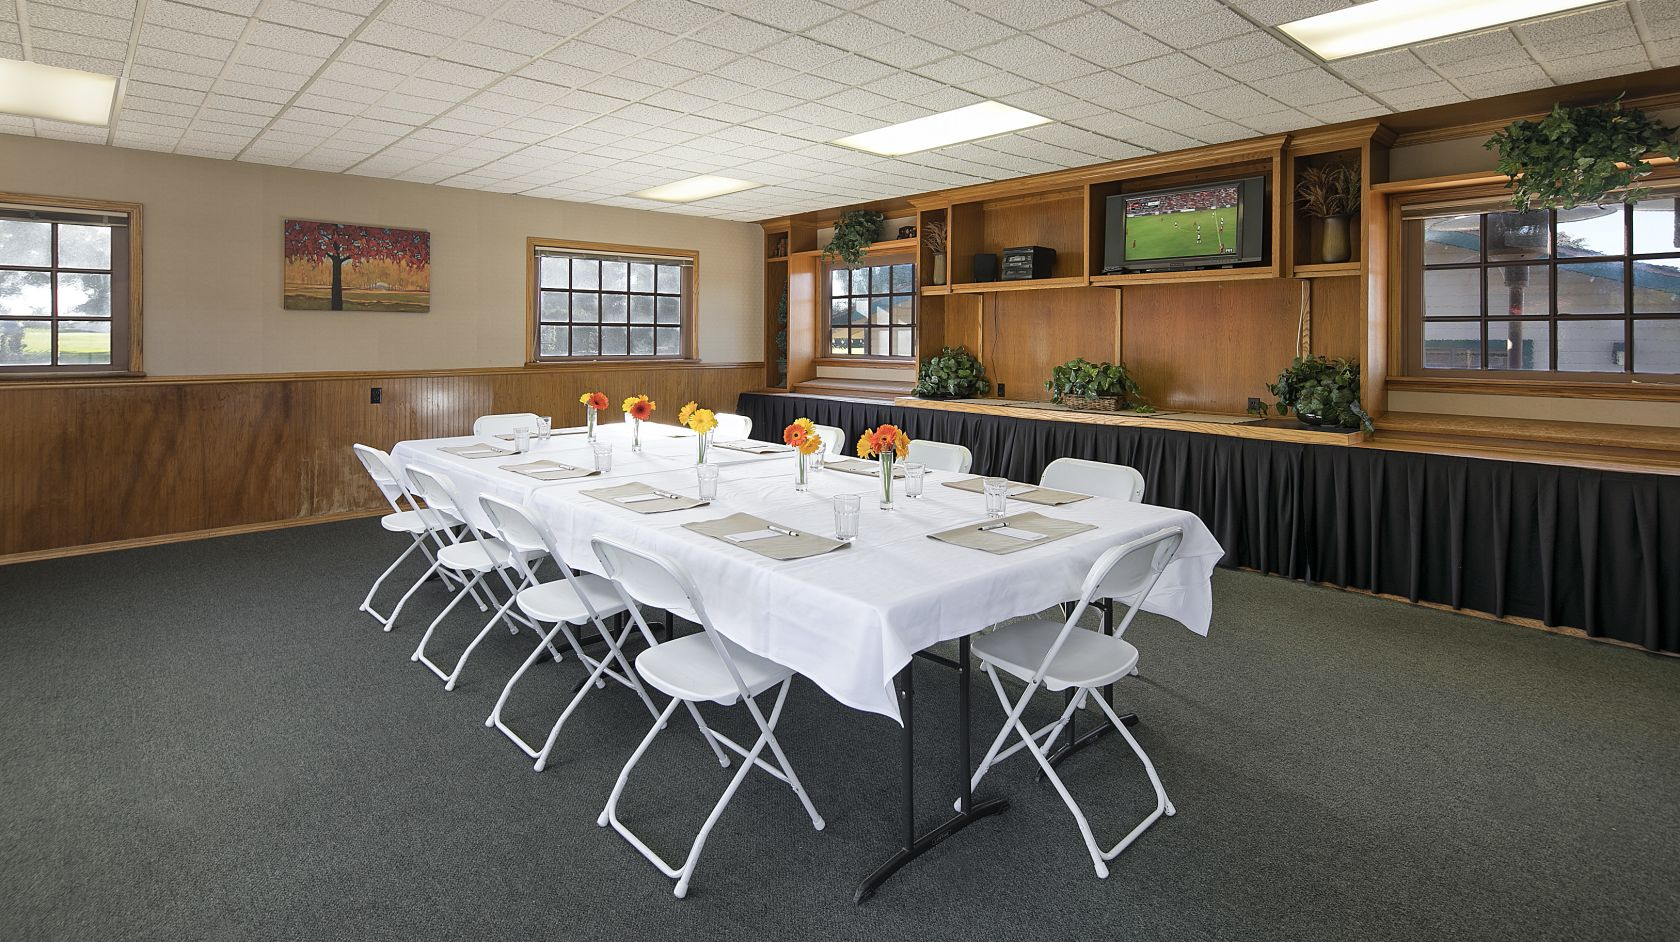 Meeting rooms in Morro Bay | Sea Pines Golf Resort in Los Osos